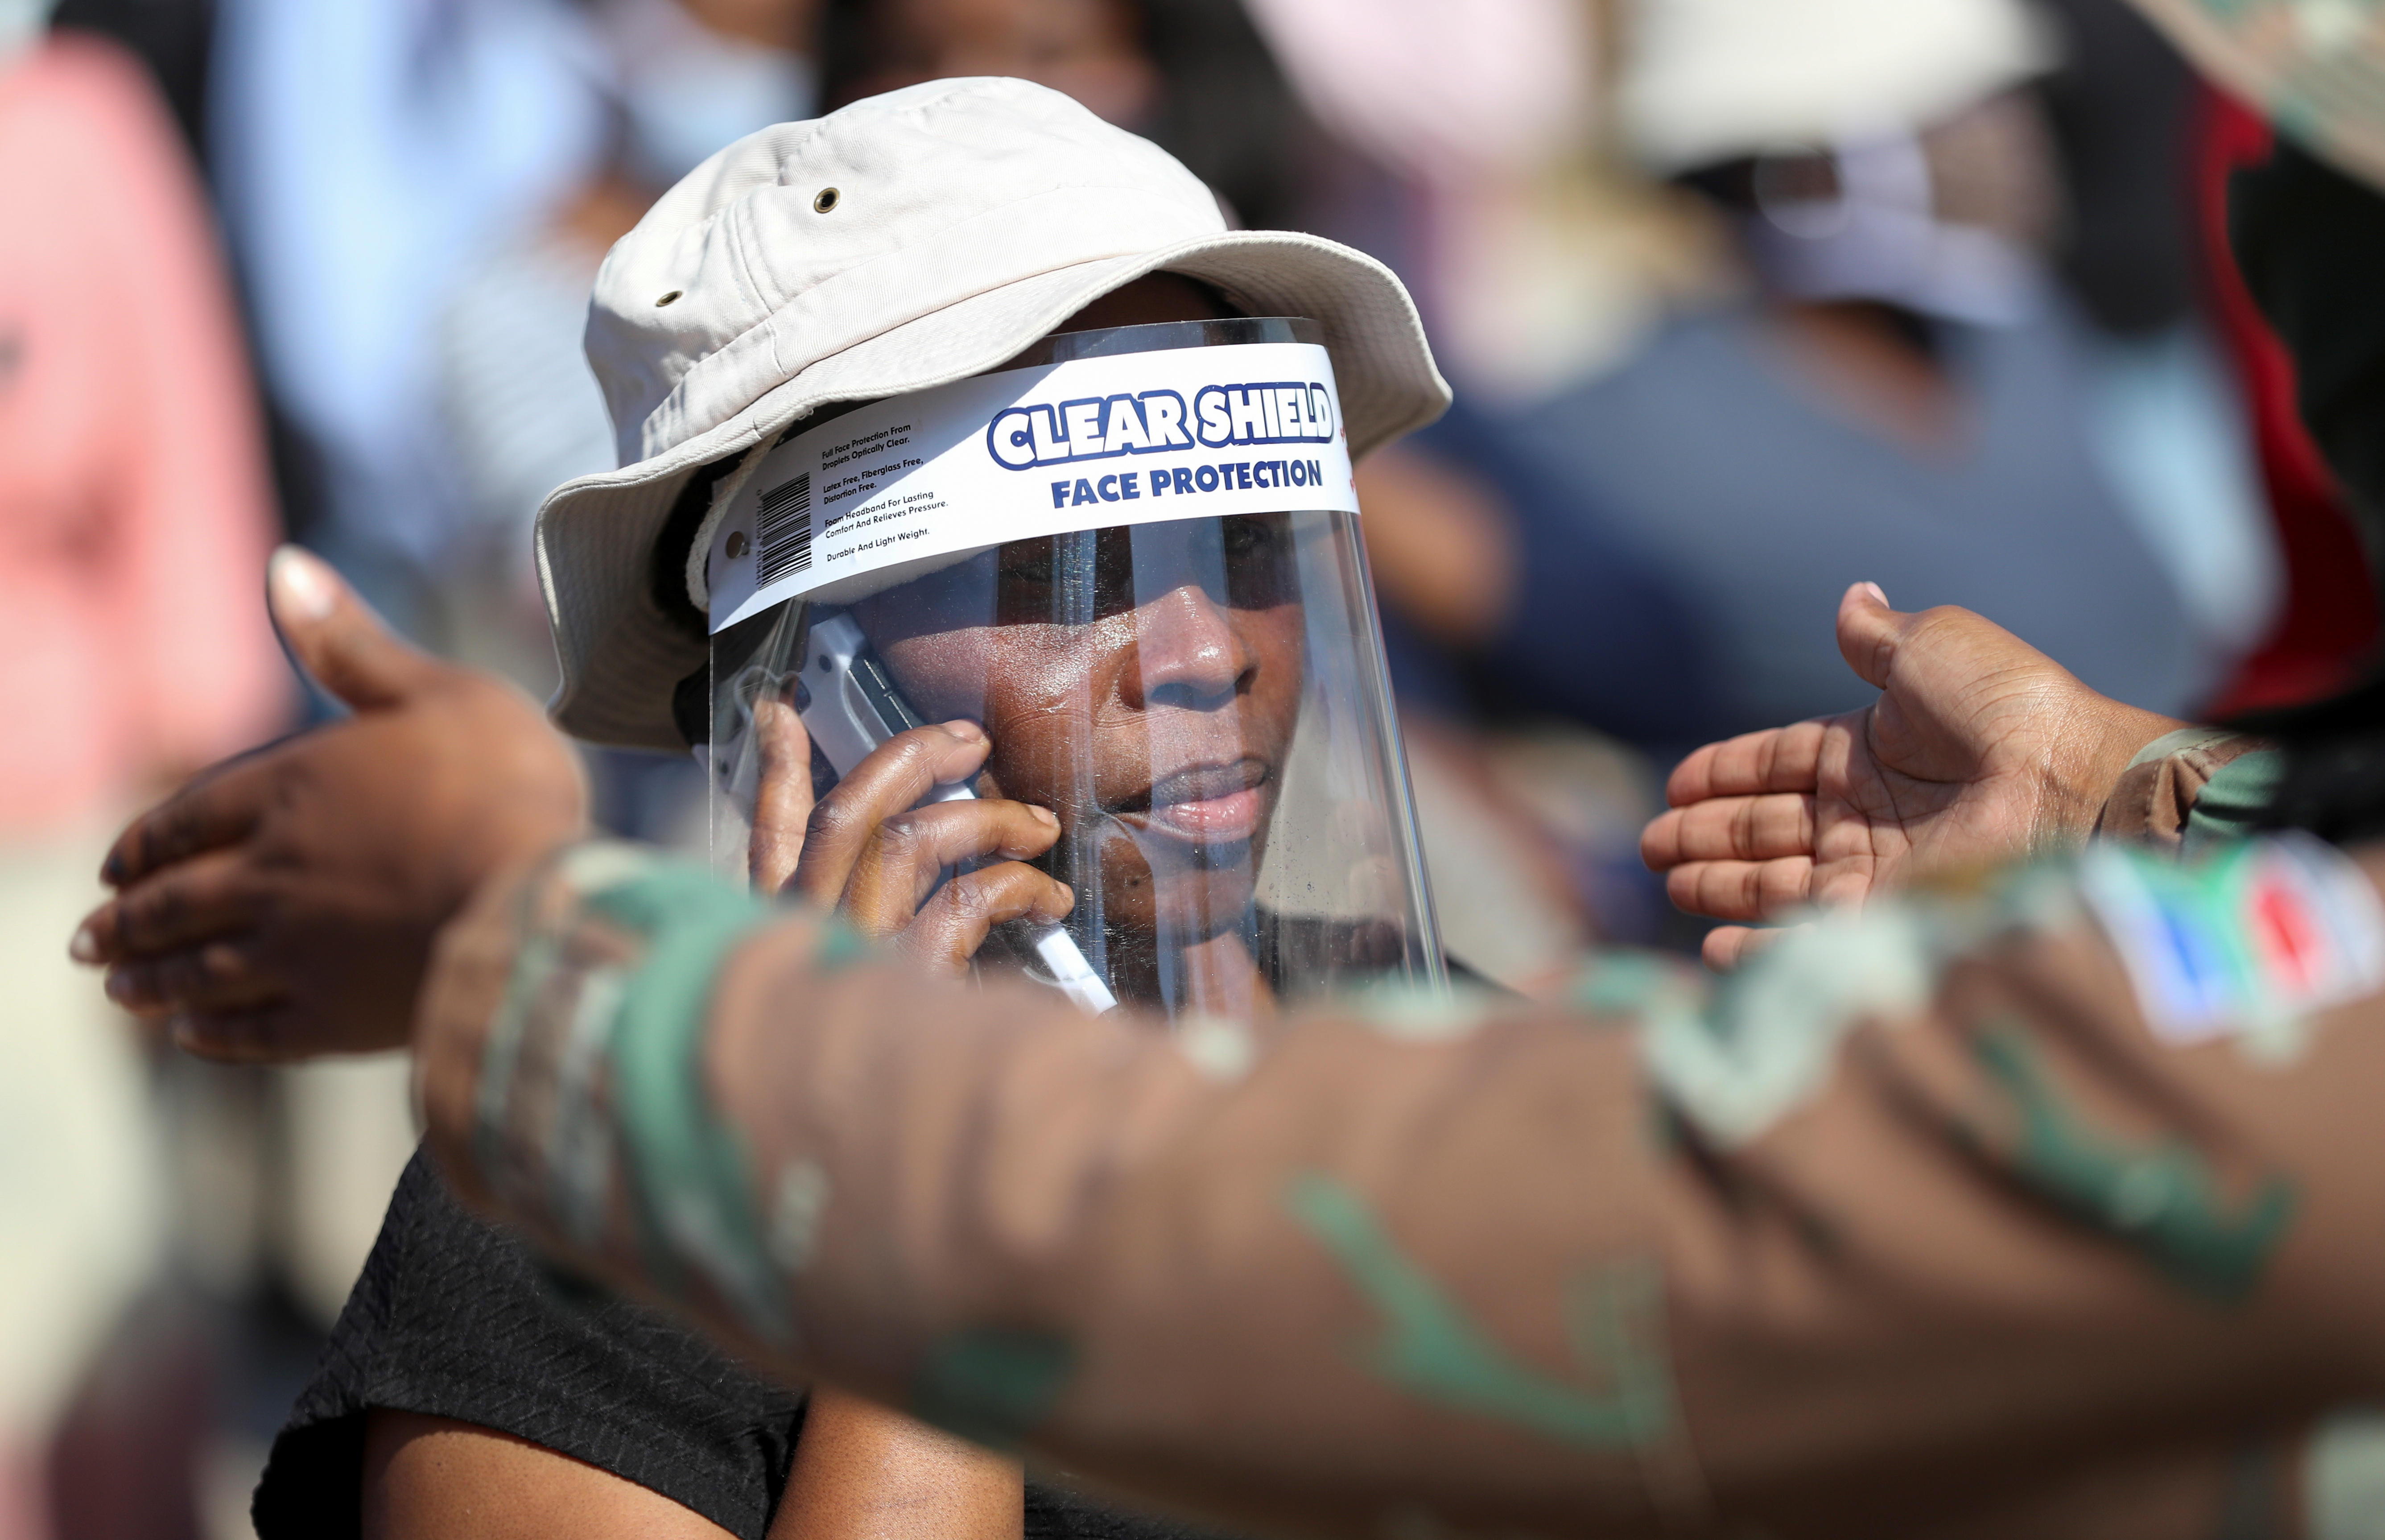 A woman wears a protective face shield during food distribution, as South Africa starts to relax some aspects of a stringent nationwide coronavirus disease (COVID-19) lockdown, in Diepsloot near Johannesburg, South Africa, May 8, 2020. Photo: Reuters